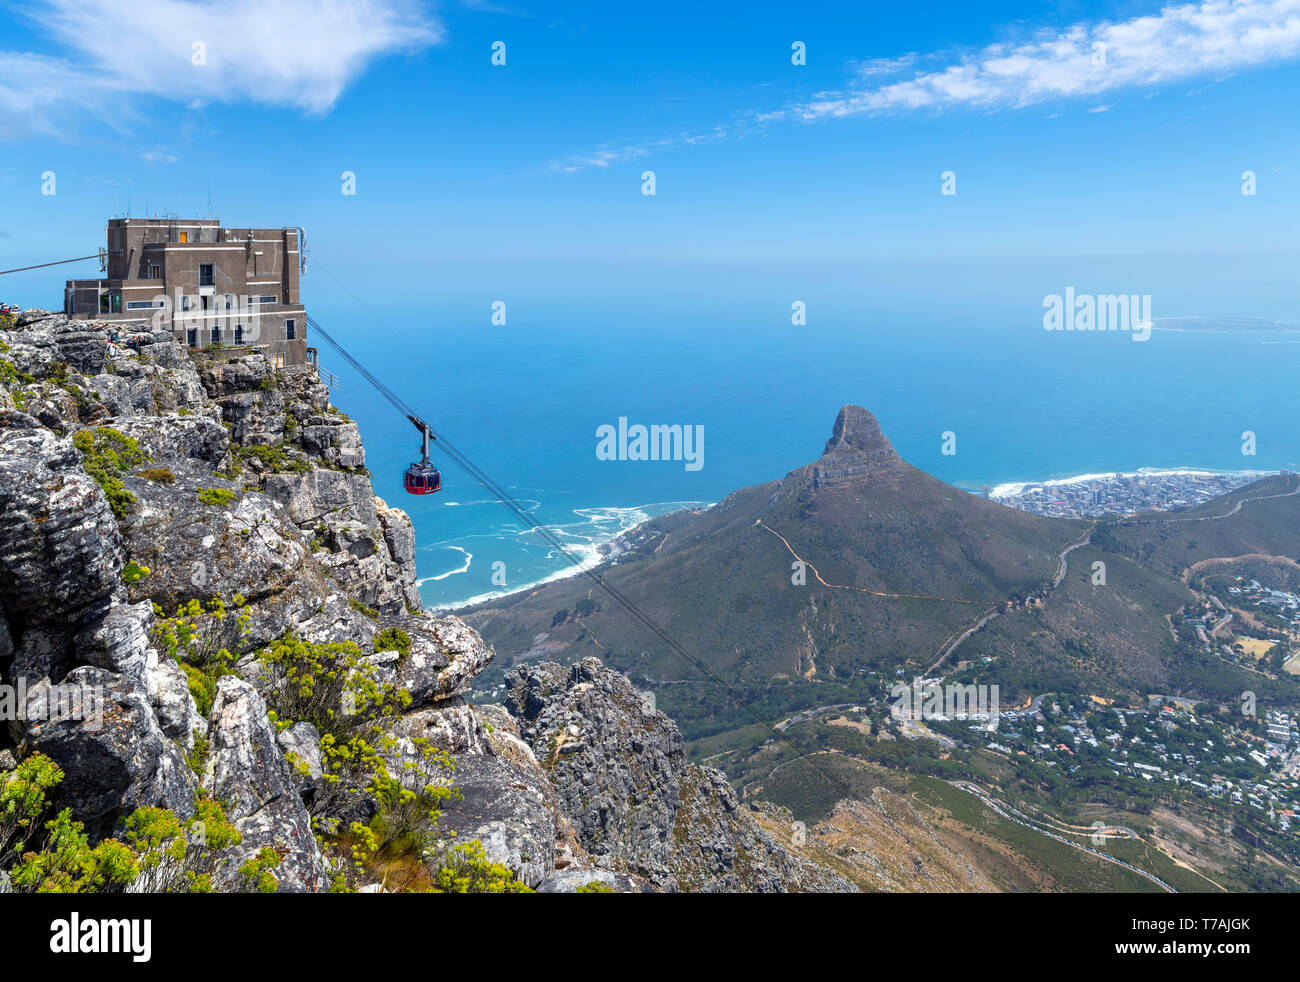 View from Table Mountain with Aerial Cableway in foreground and Lion's Head, Signal Hill and Robben Island behind, Cape Town, South Africa. - Stock Image